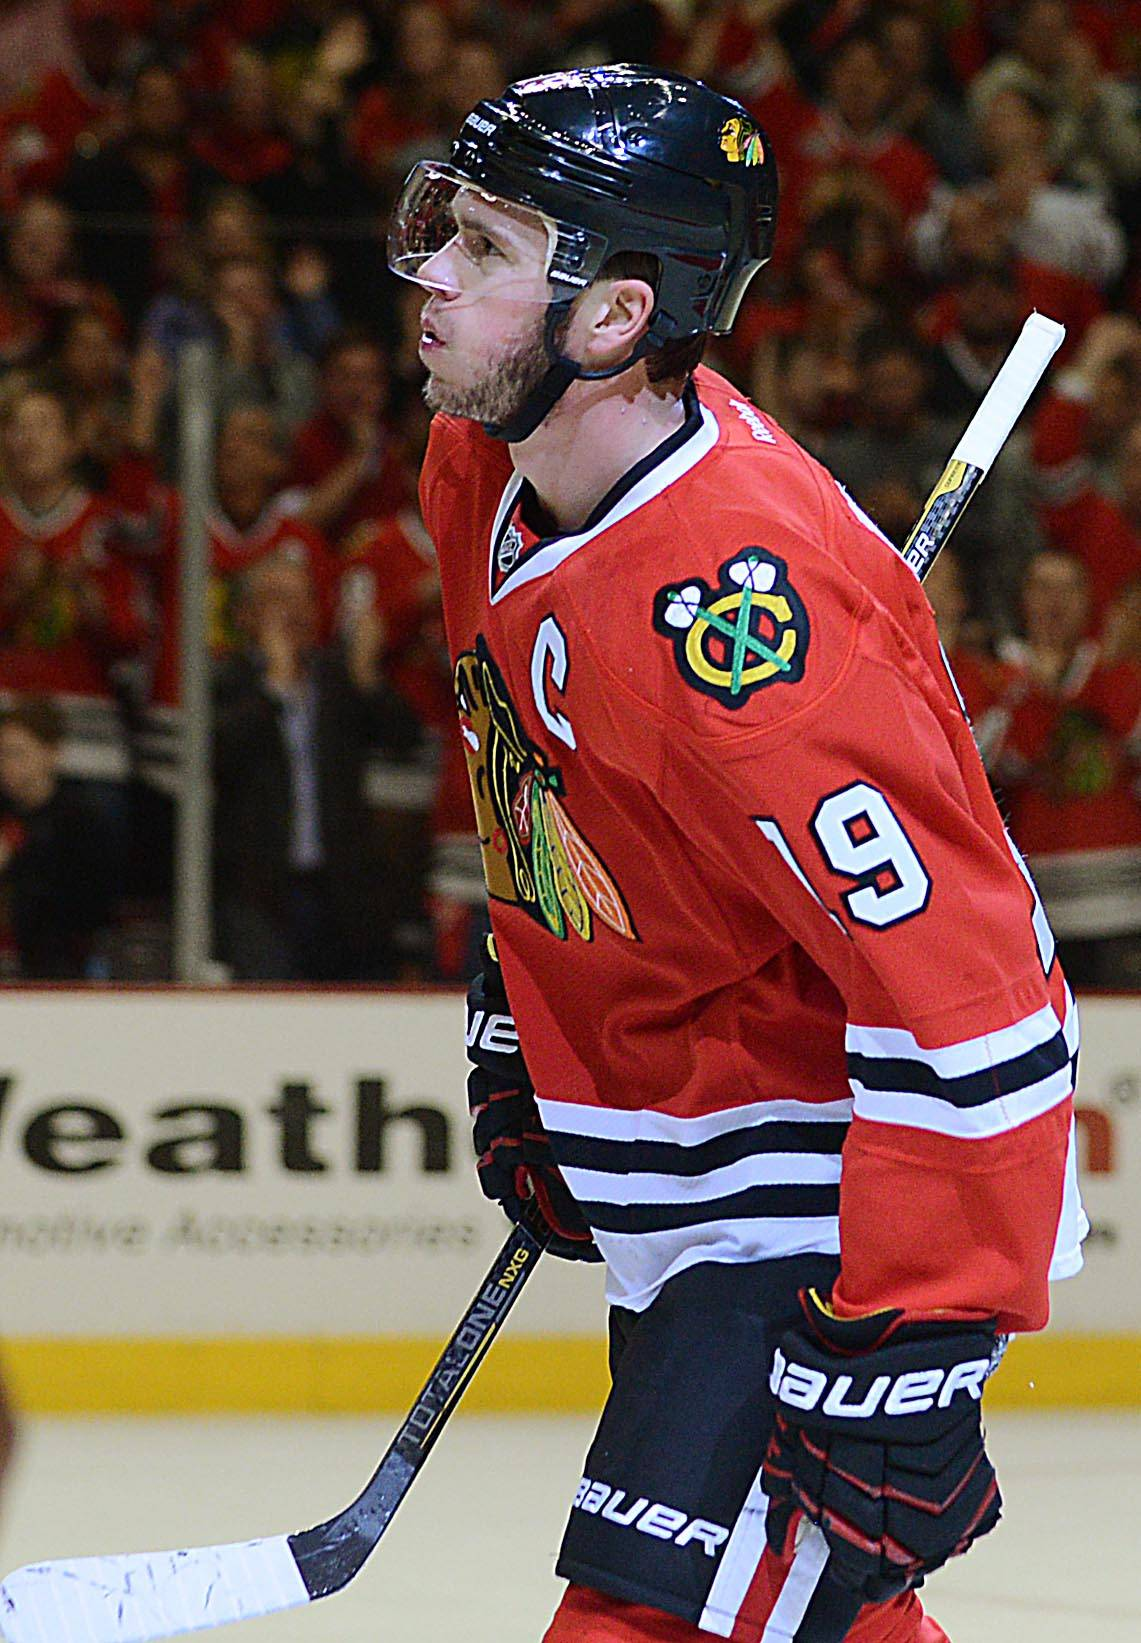 In 87 NHL playoff games, Blackhawks captain Jonathan Toews has 10 game-winning goals, which is a franchise record.